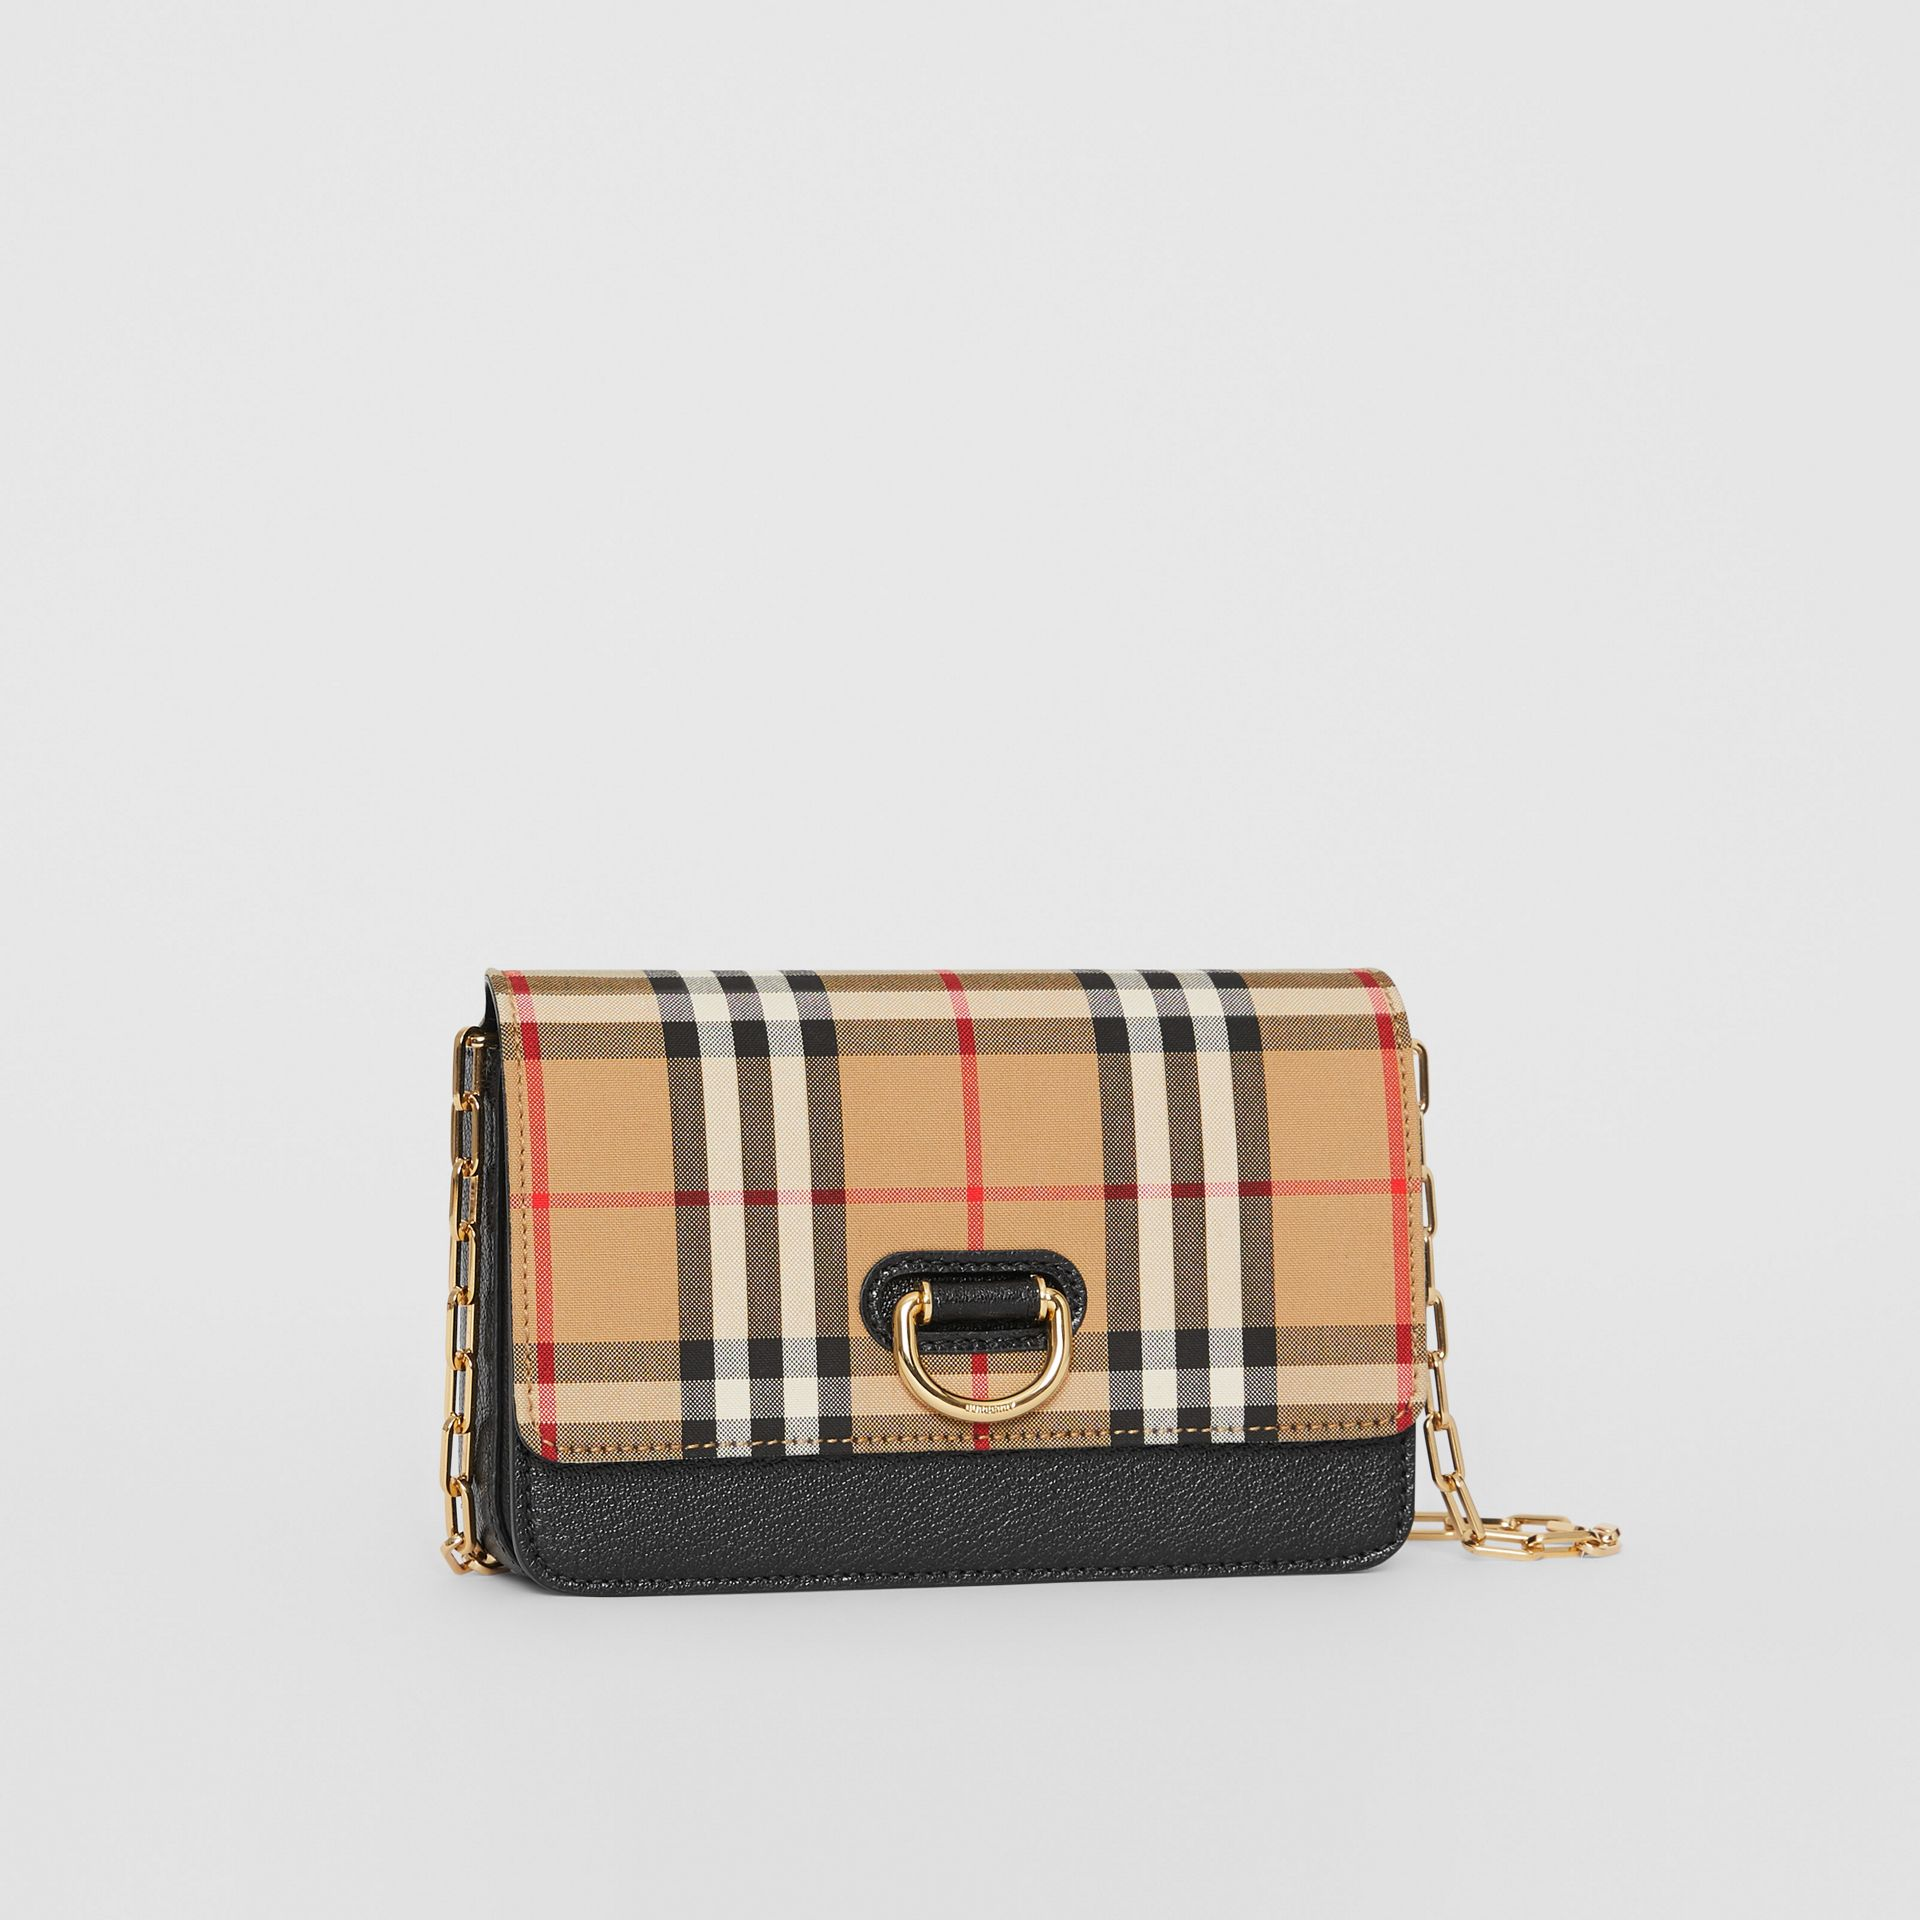 The Mini Vintage Check and Leather D-ring Bag in Black - Women | Burberry United Kingdom - gallery image 6